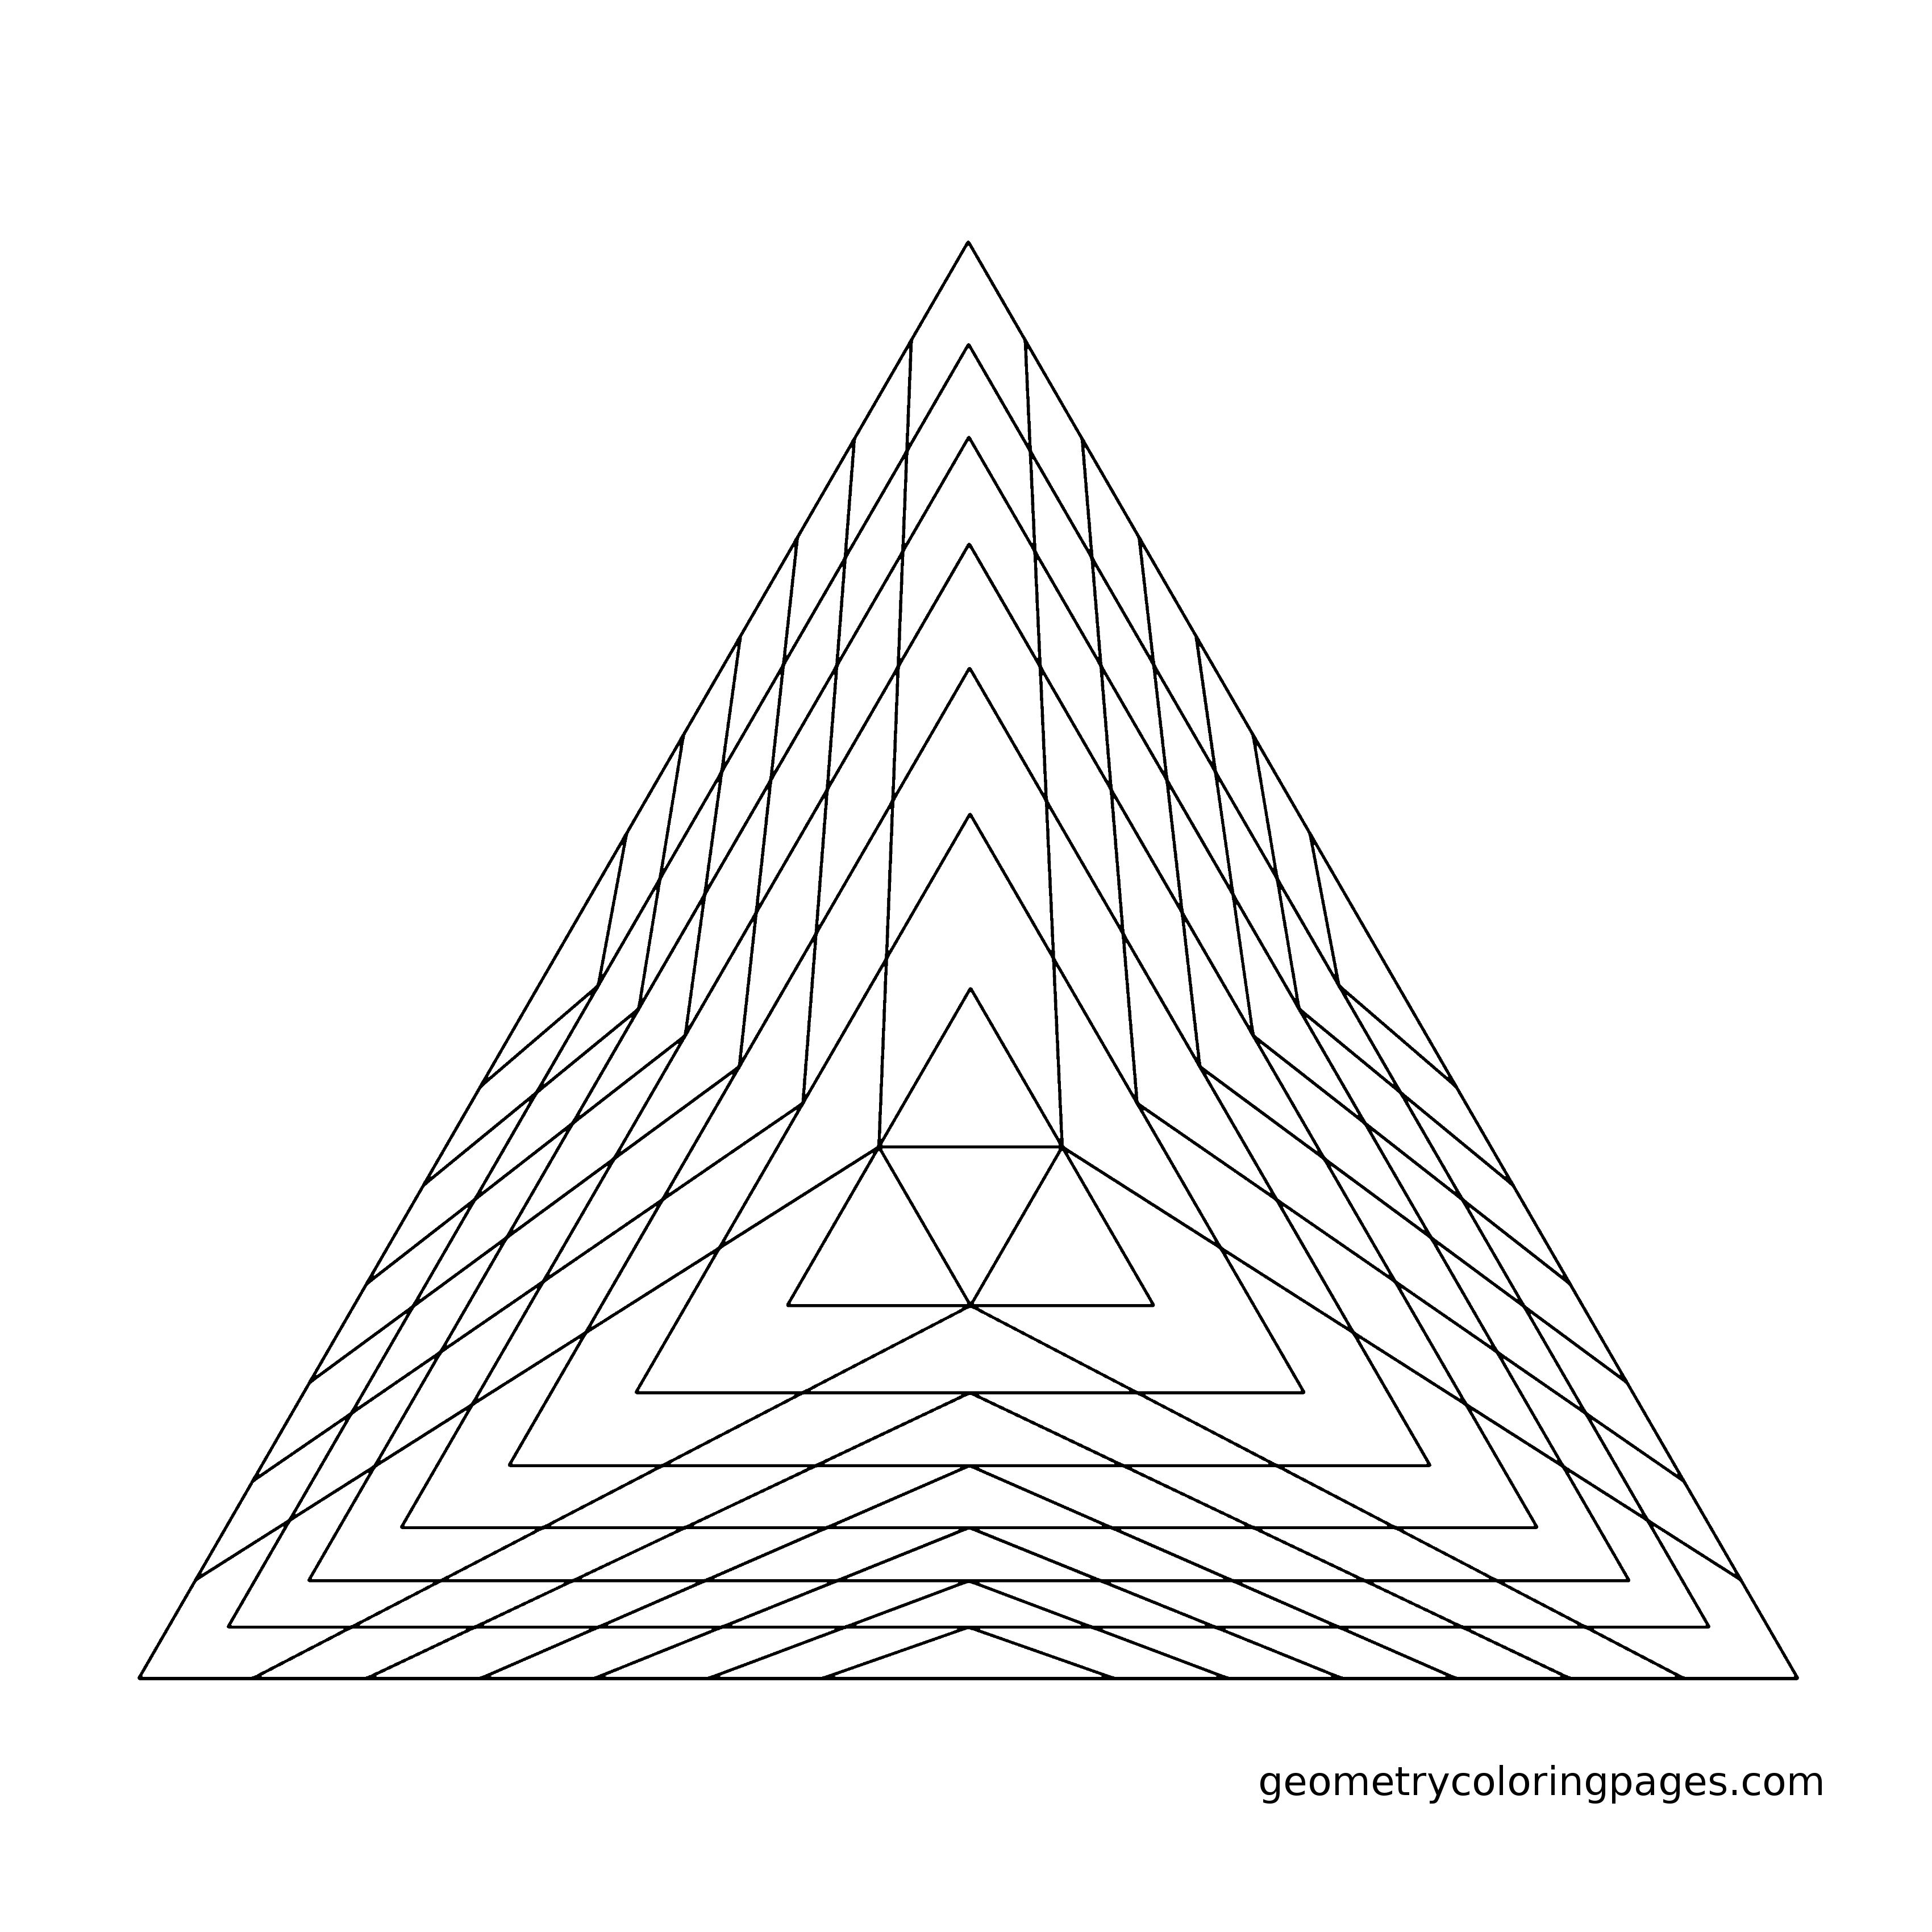 Geometry Coloring Page, Pyramid from geometrycoloringpages